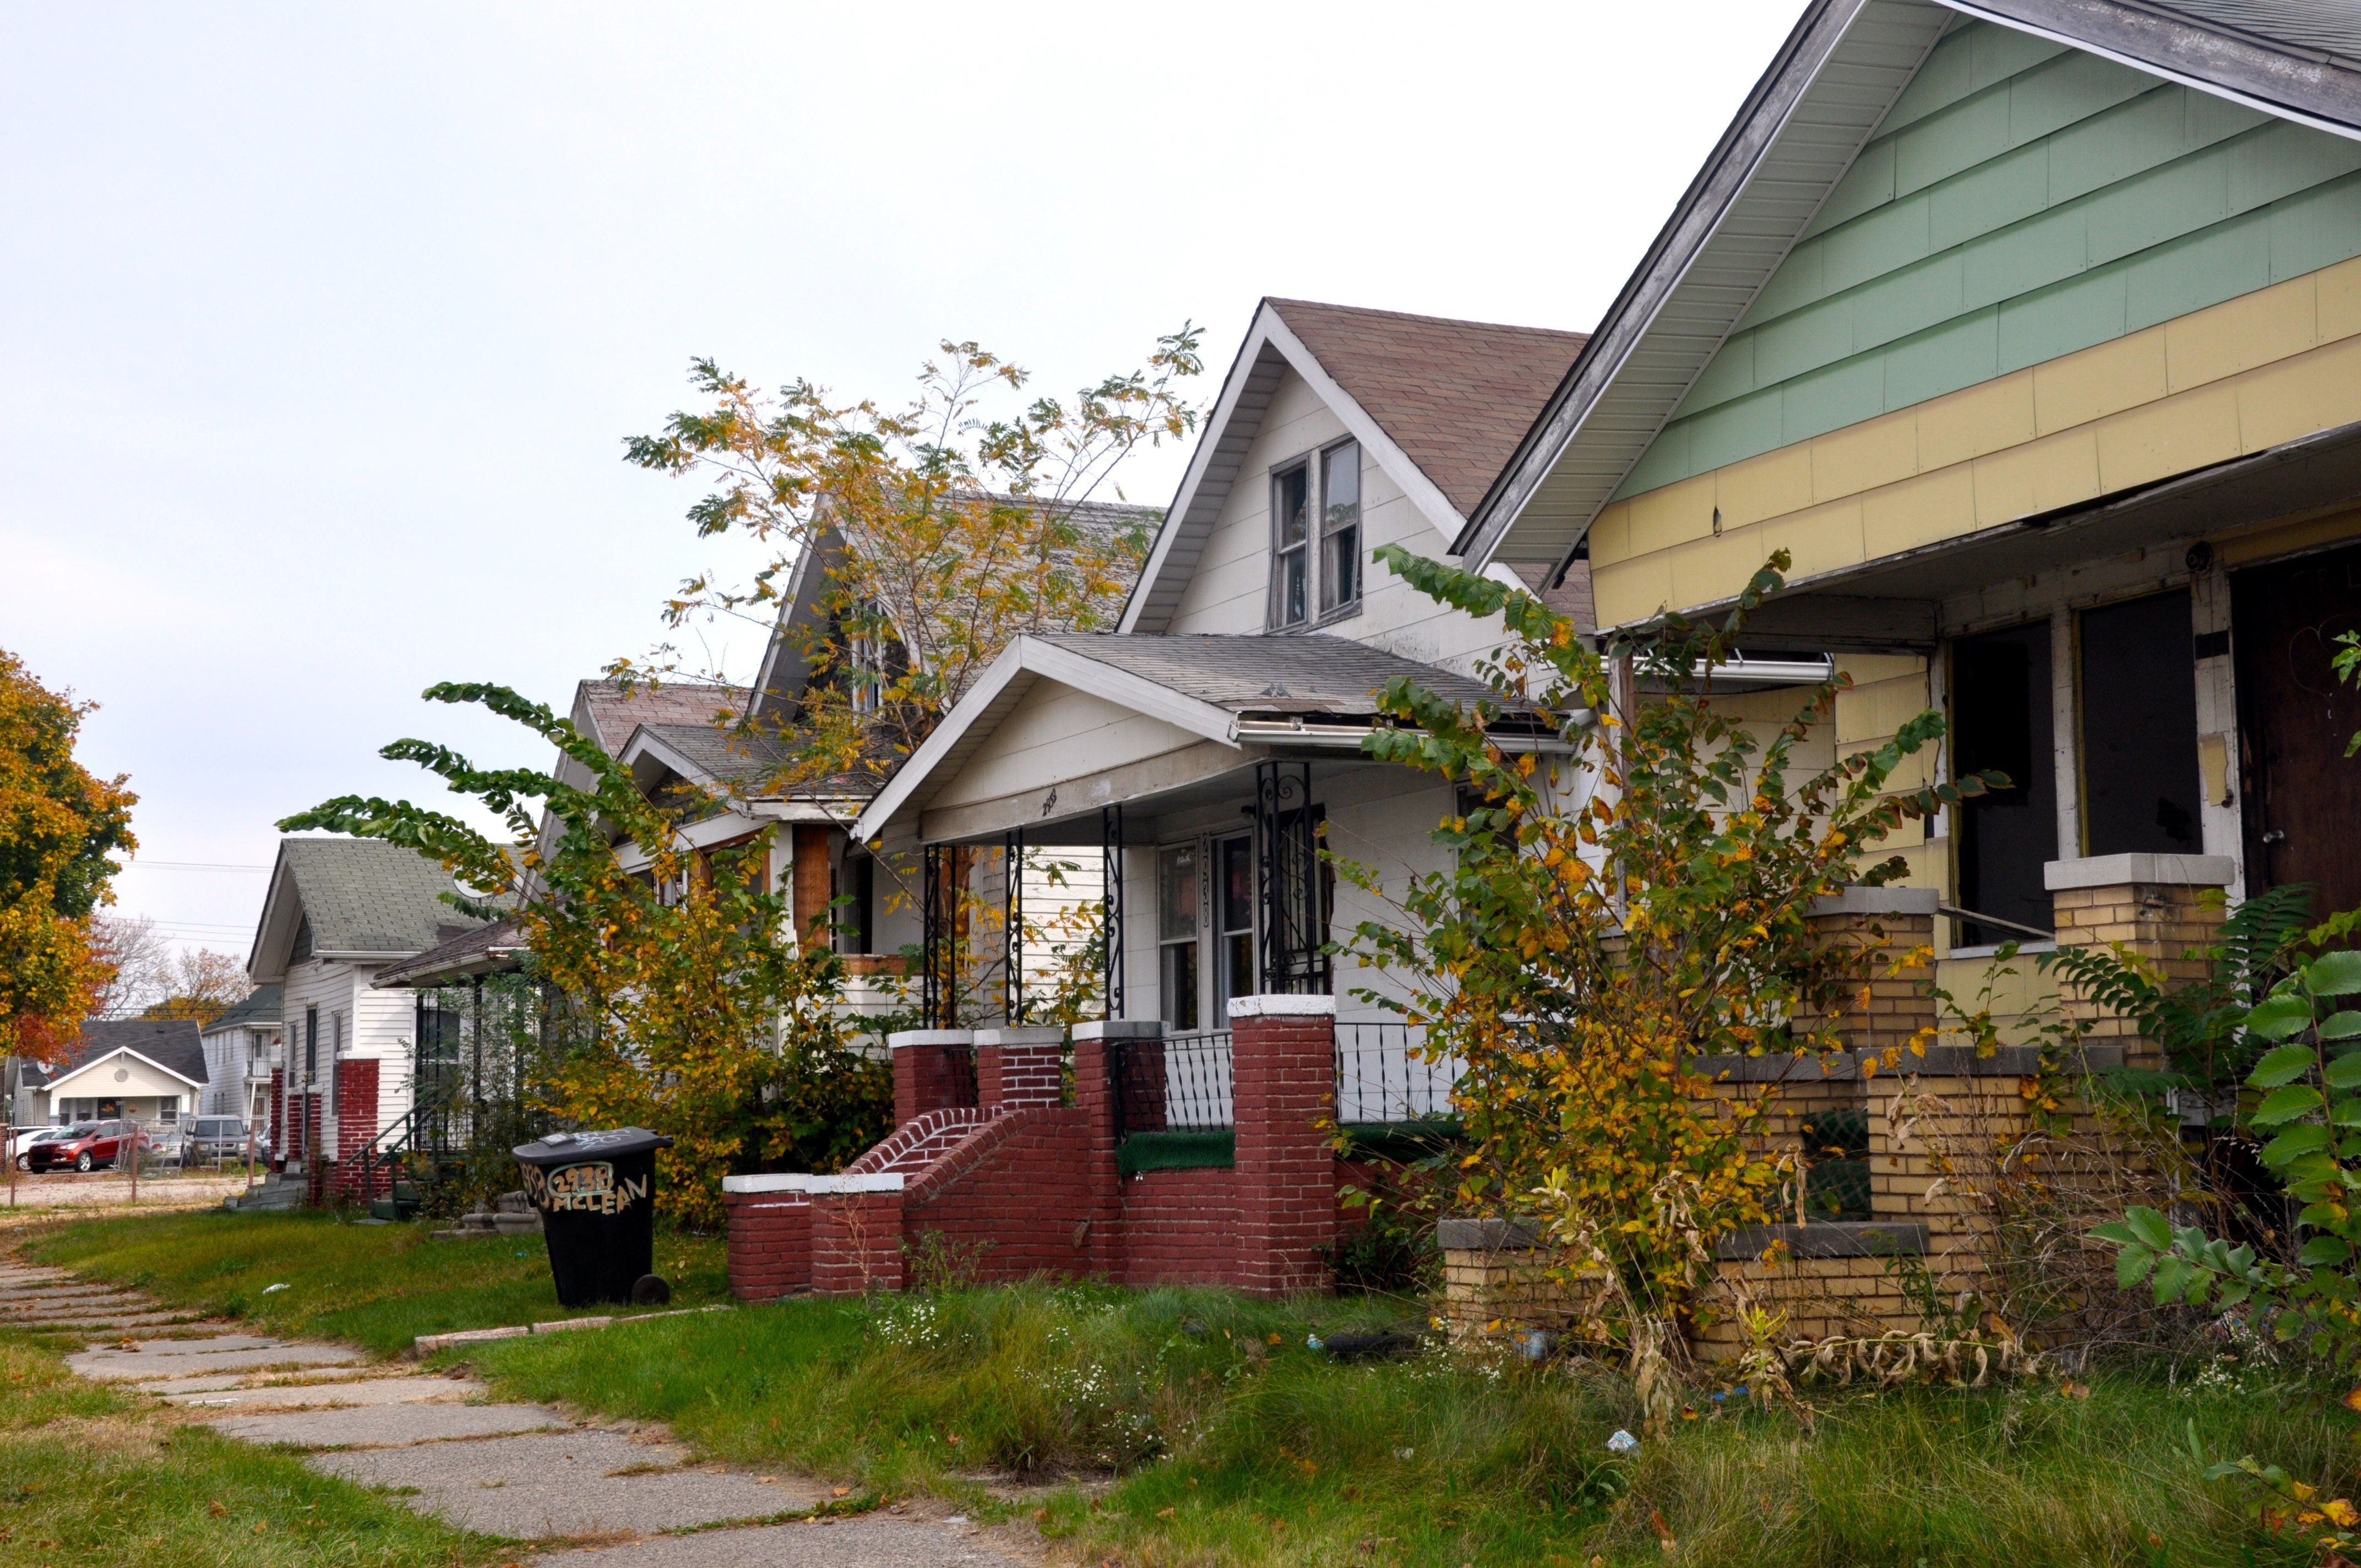 Jonathan Spikes, who unsuccessfully bid on the home he rents in Detroit, says there are more vacant homes on his block than o